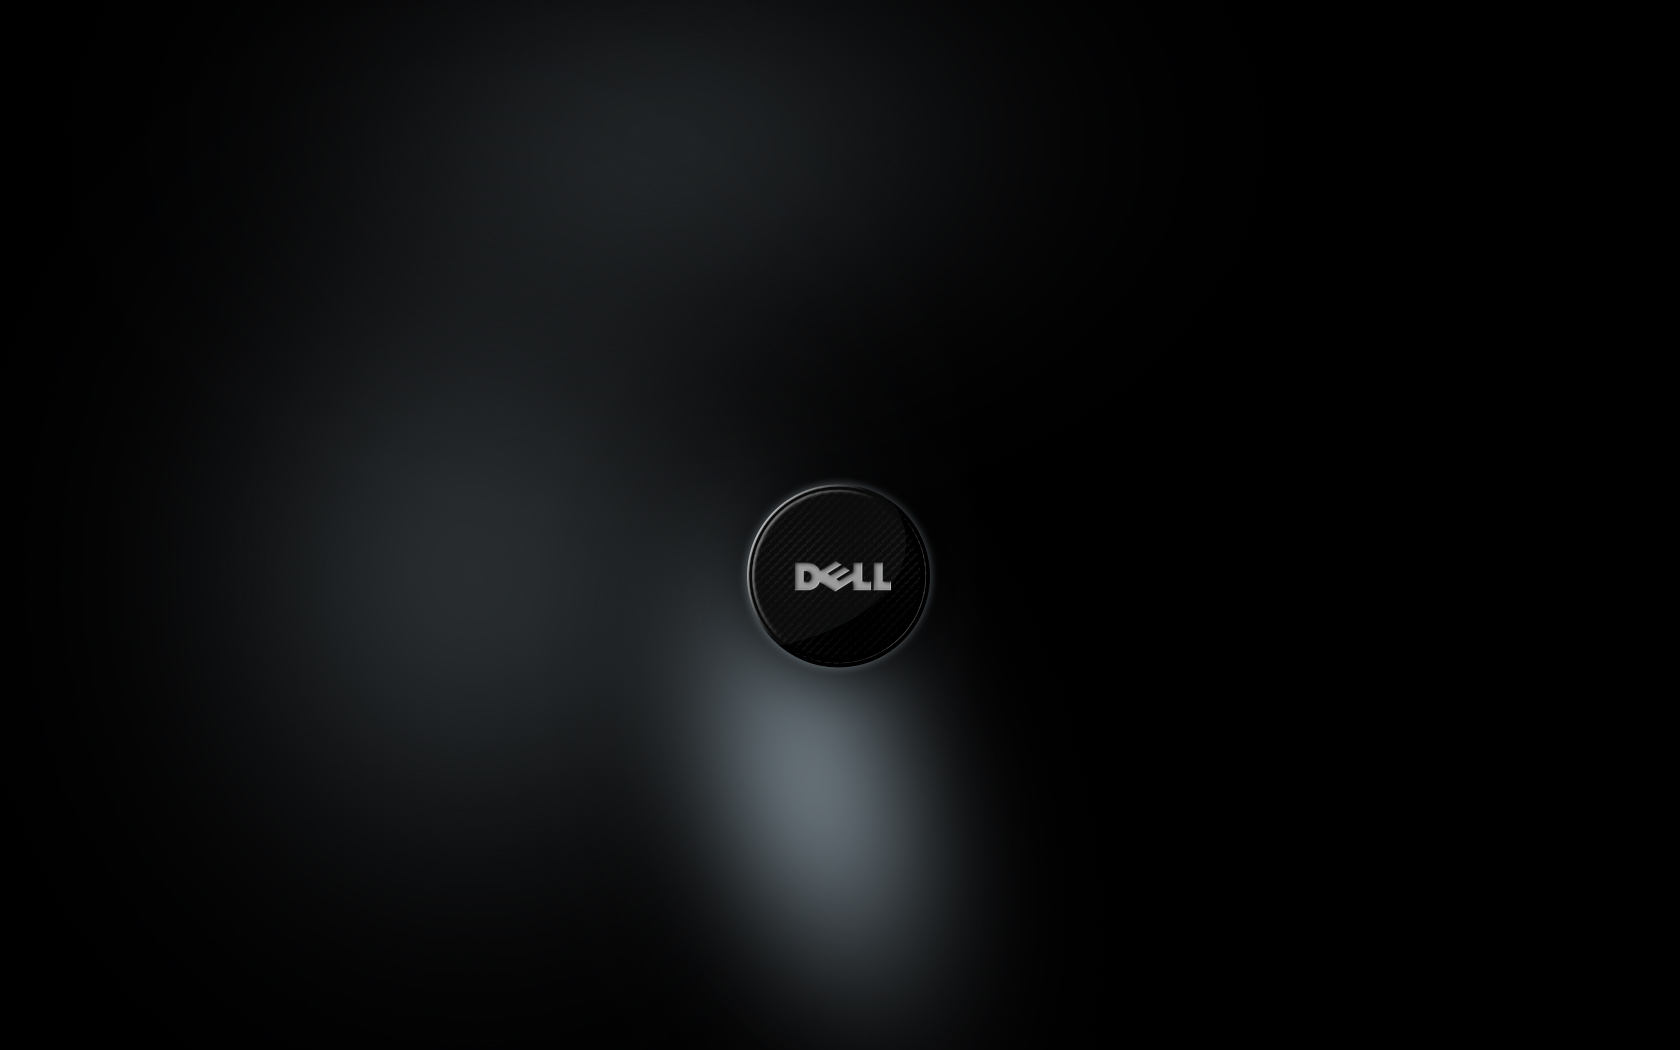 50] Wallpapers for Dell Inspiron on WallpaperSafari 1680x1050